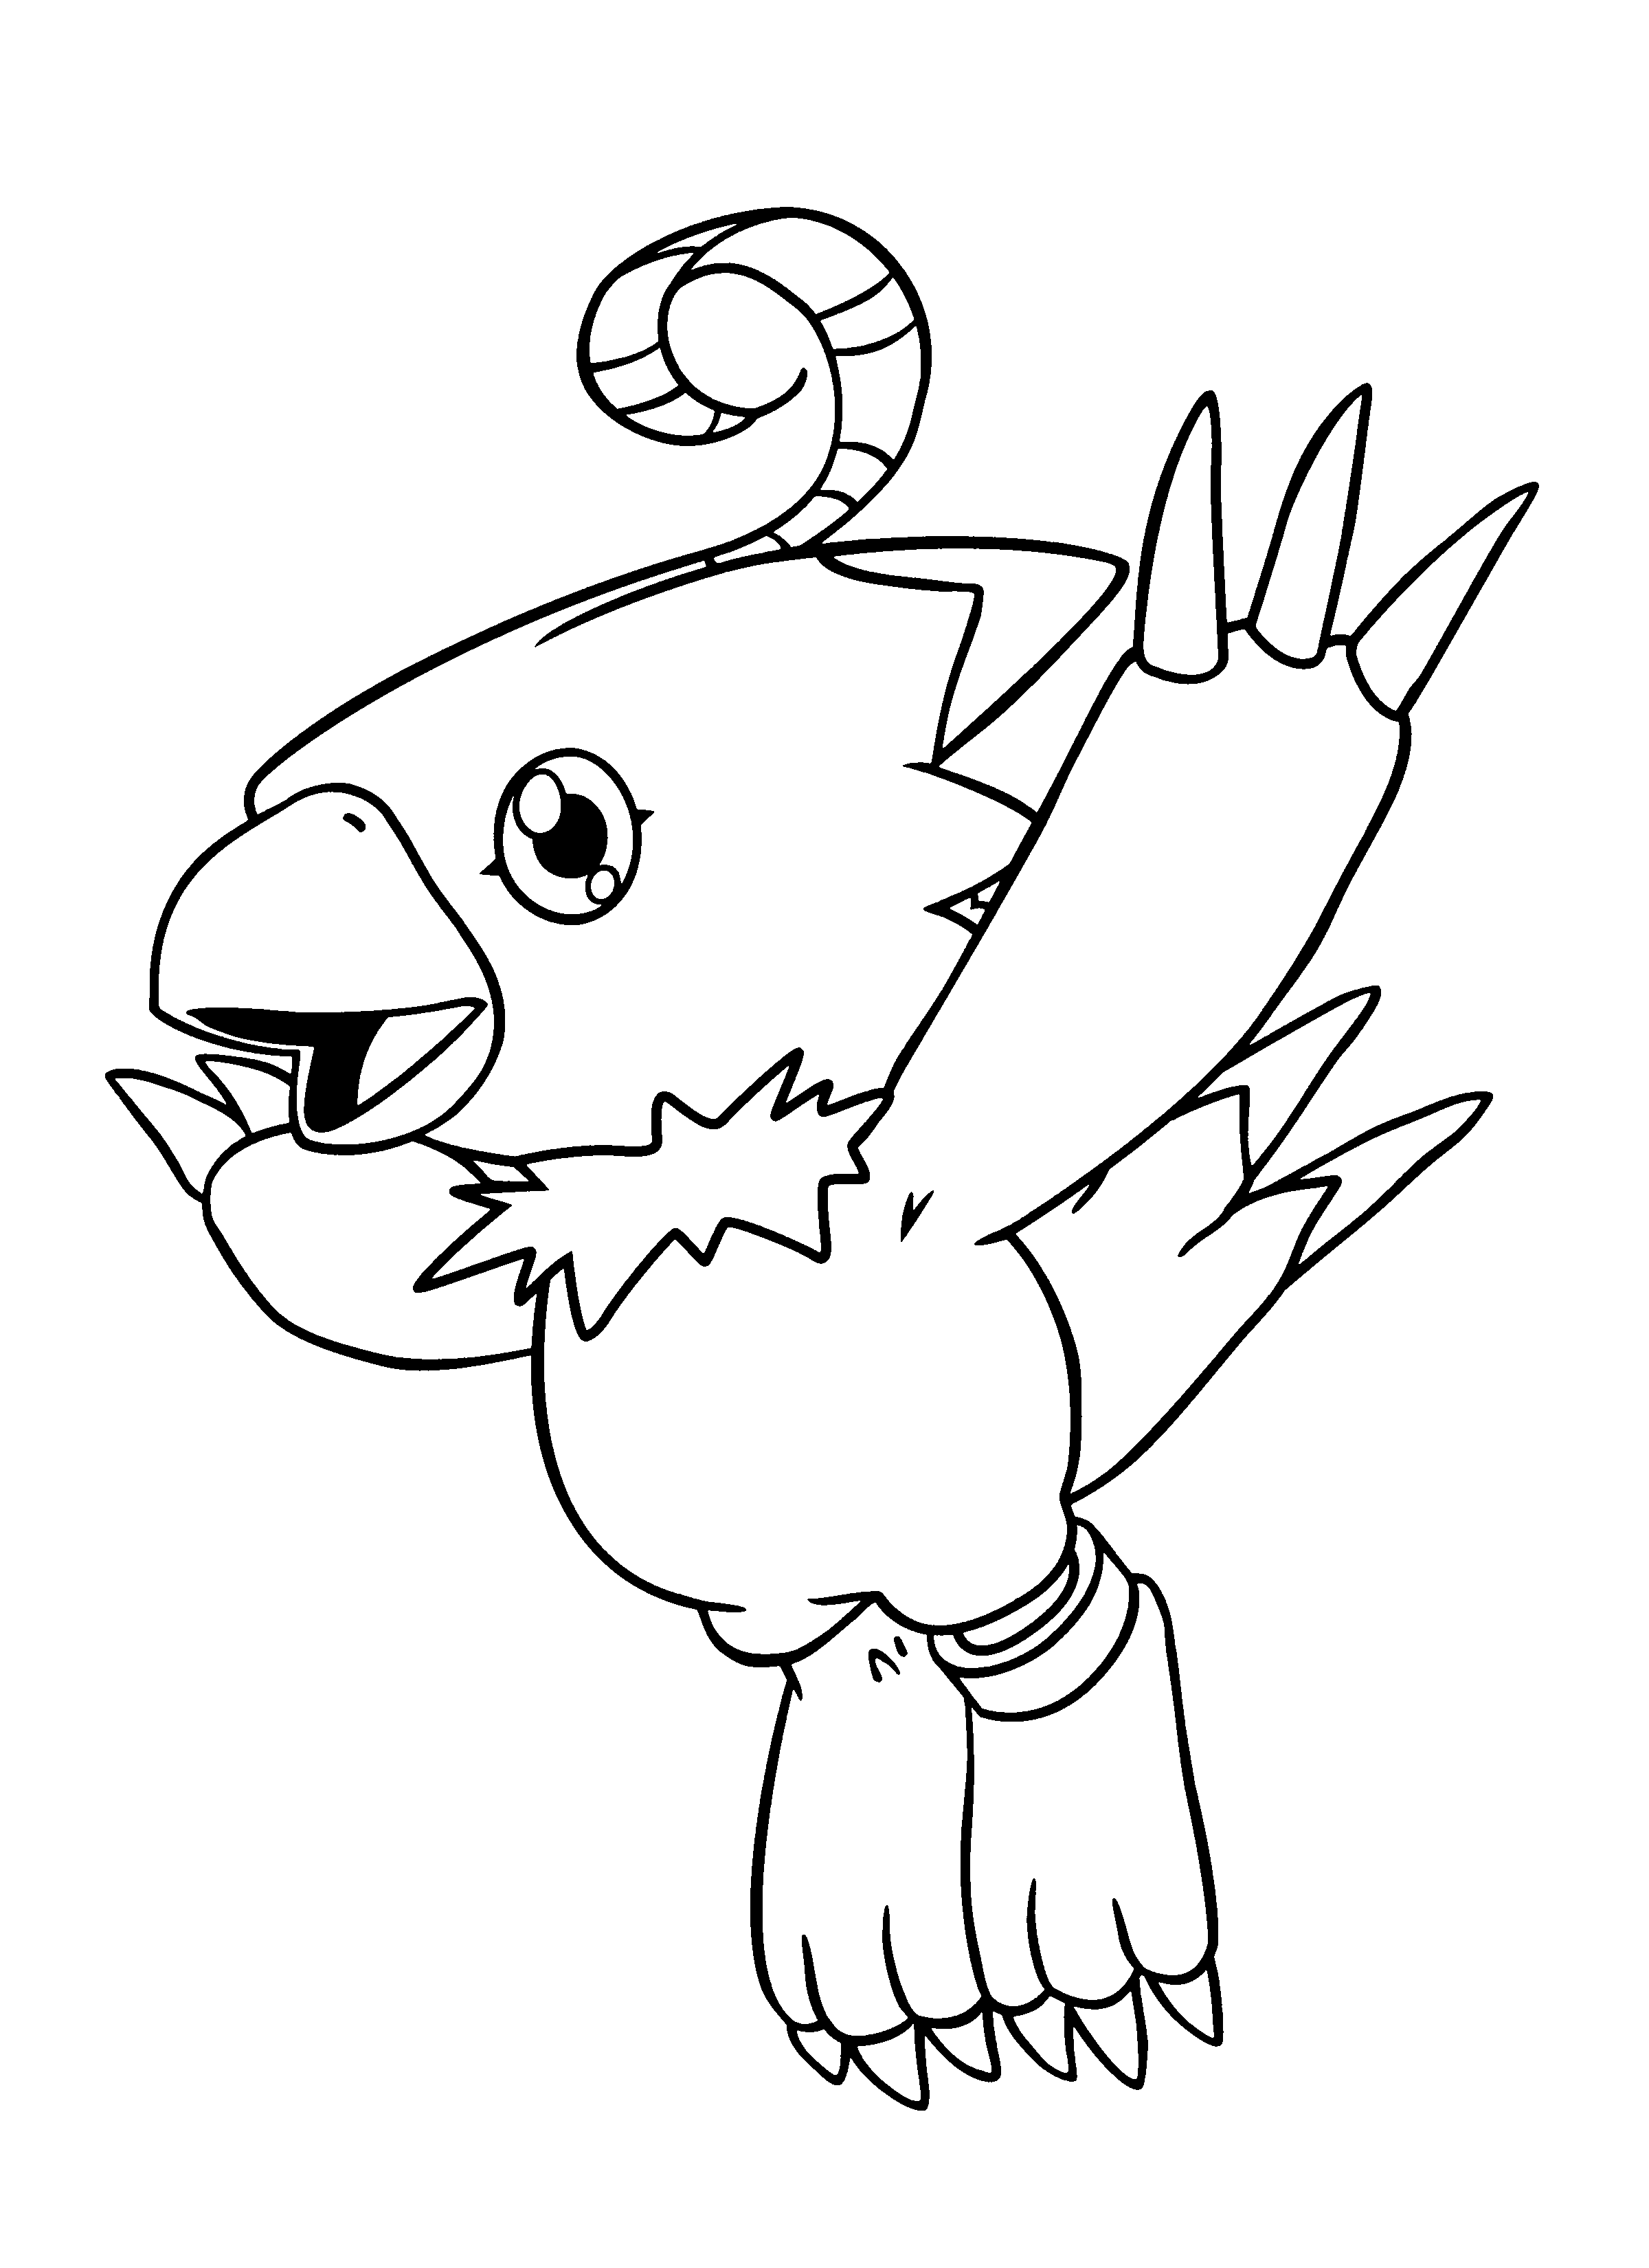 Coloring pages Tv series coloring pages Digimon